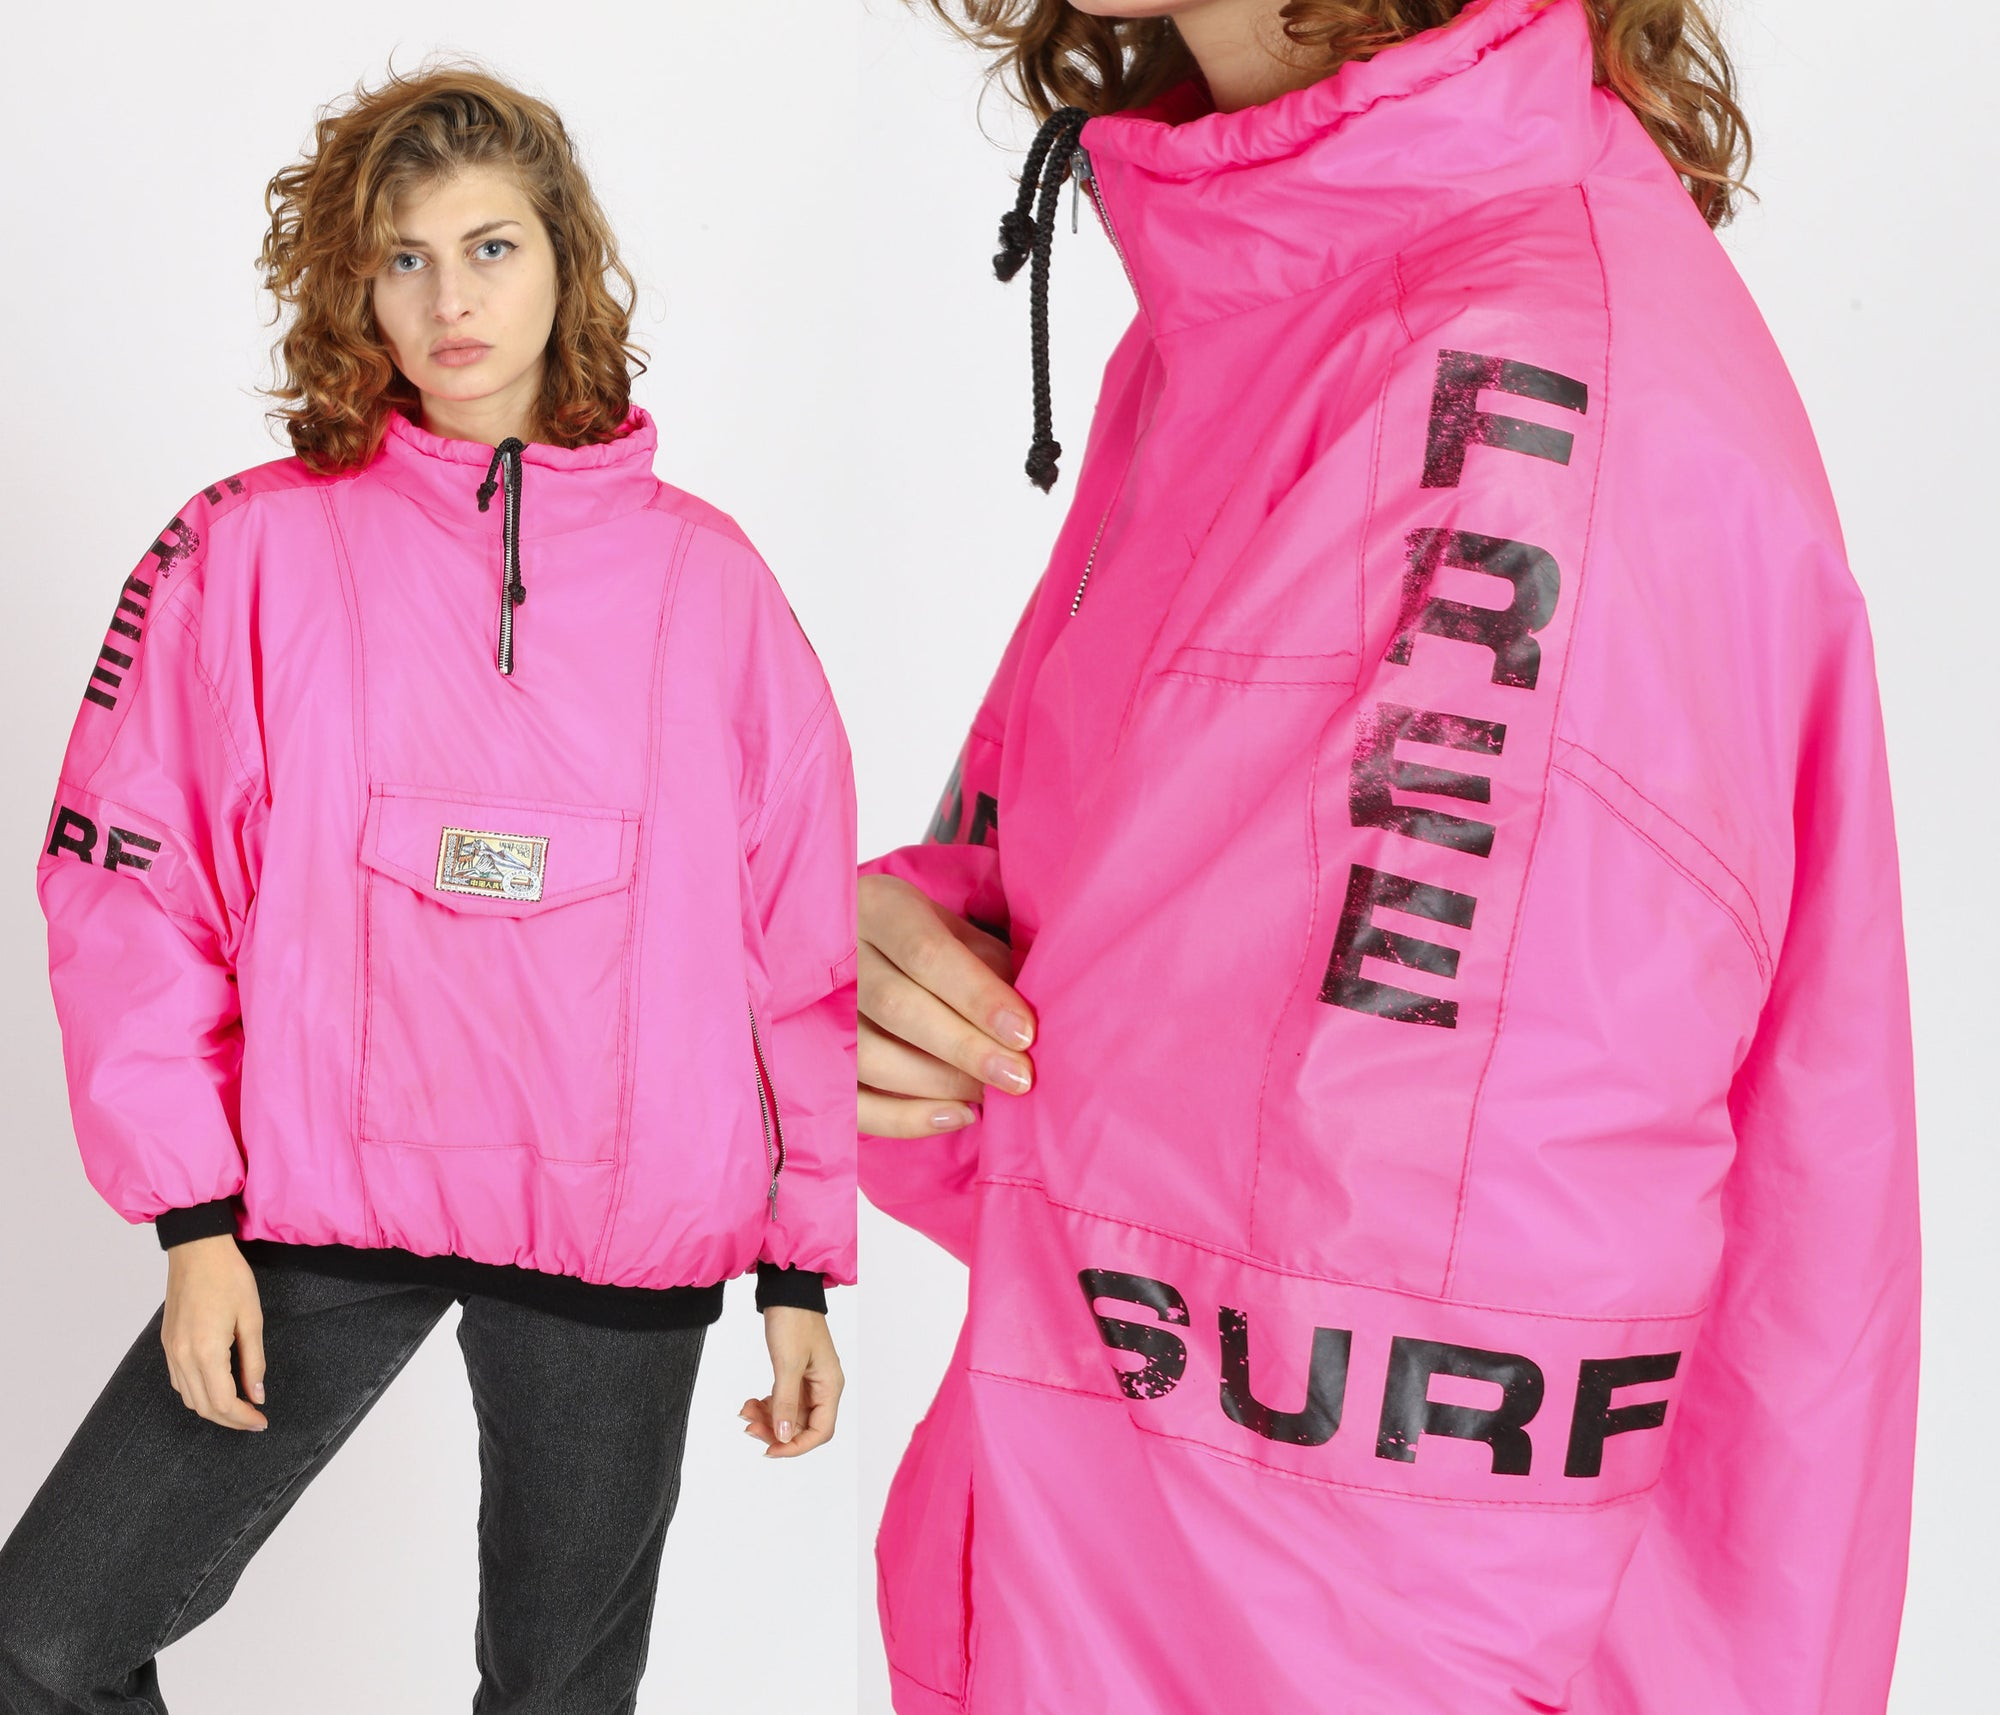 90s Neon Pink Free Surf Puffer Jacket - Extra Large